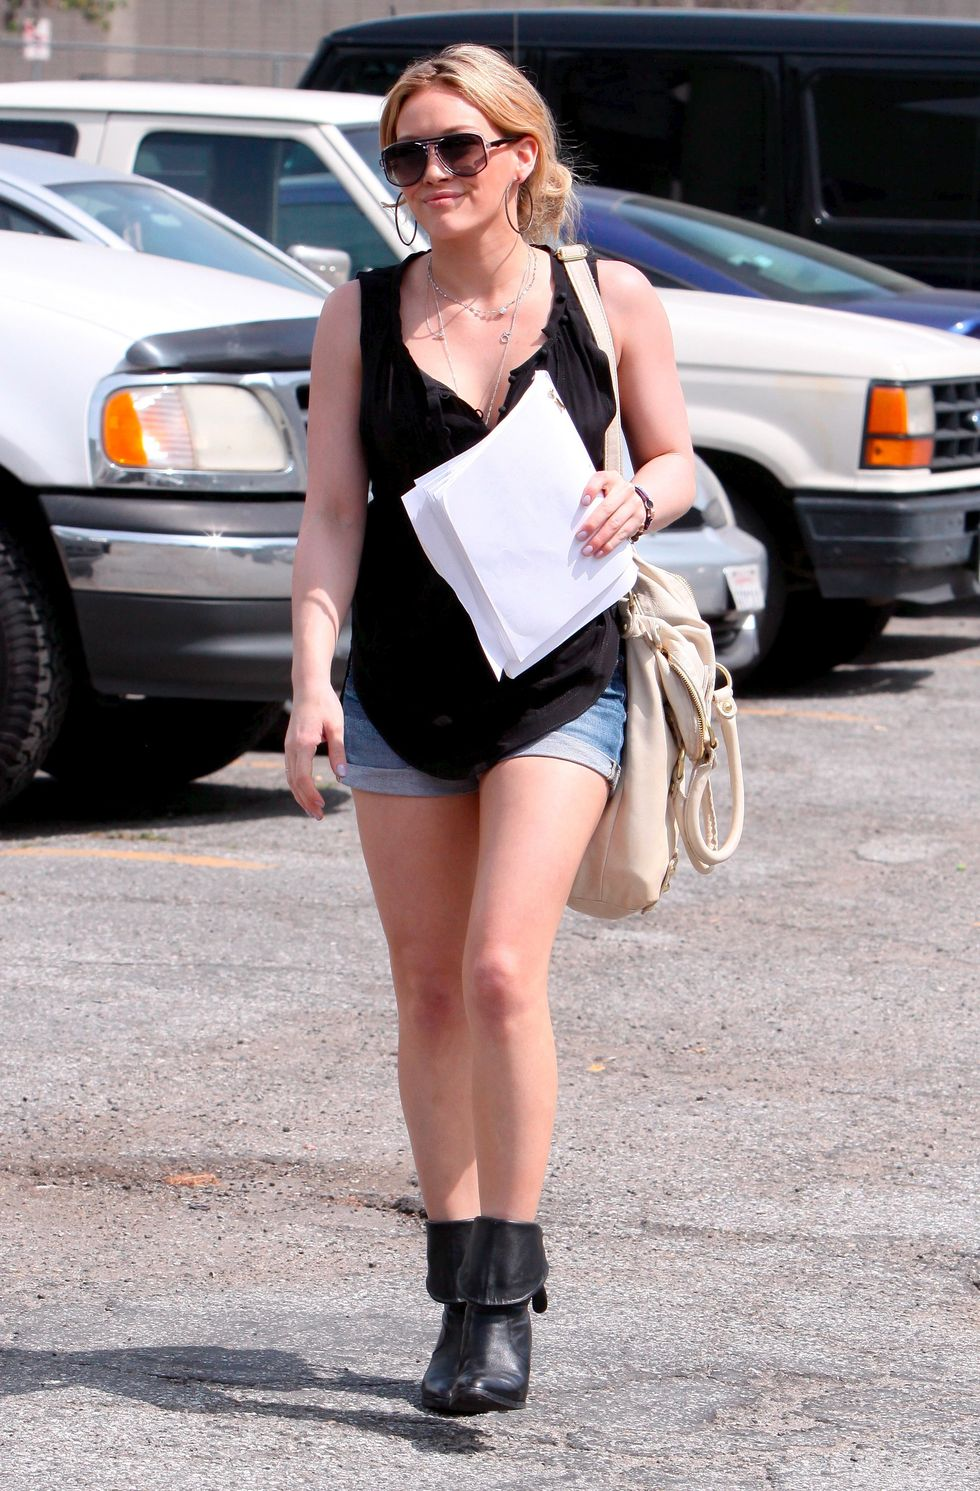 hilary-duff-leggy-candids-in-hollywood-01